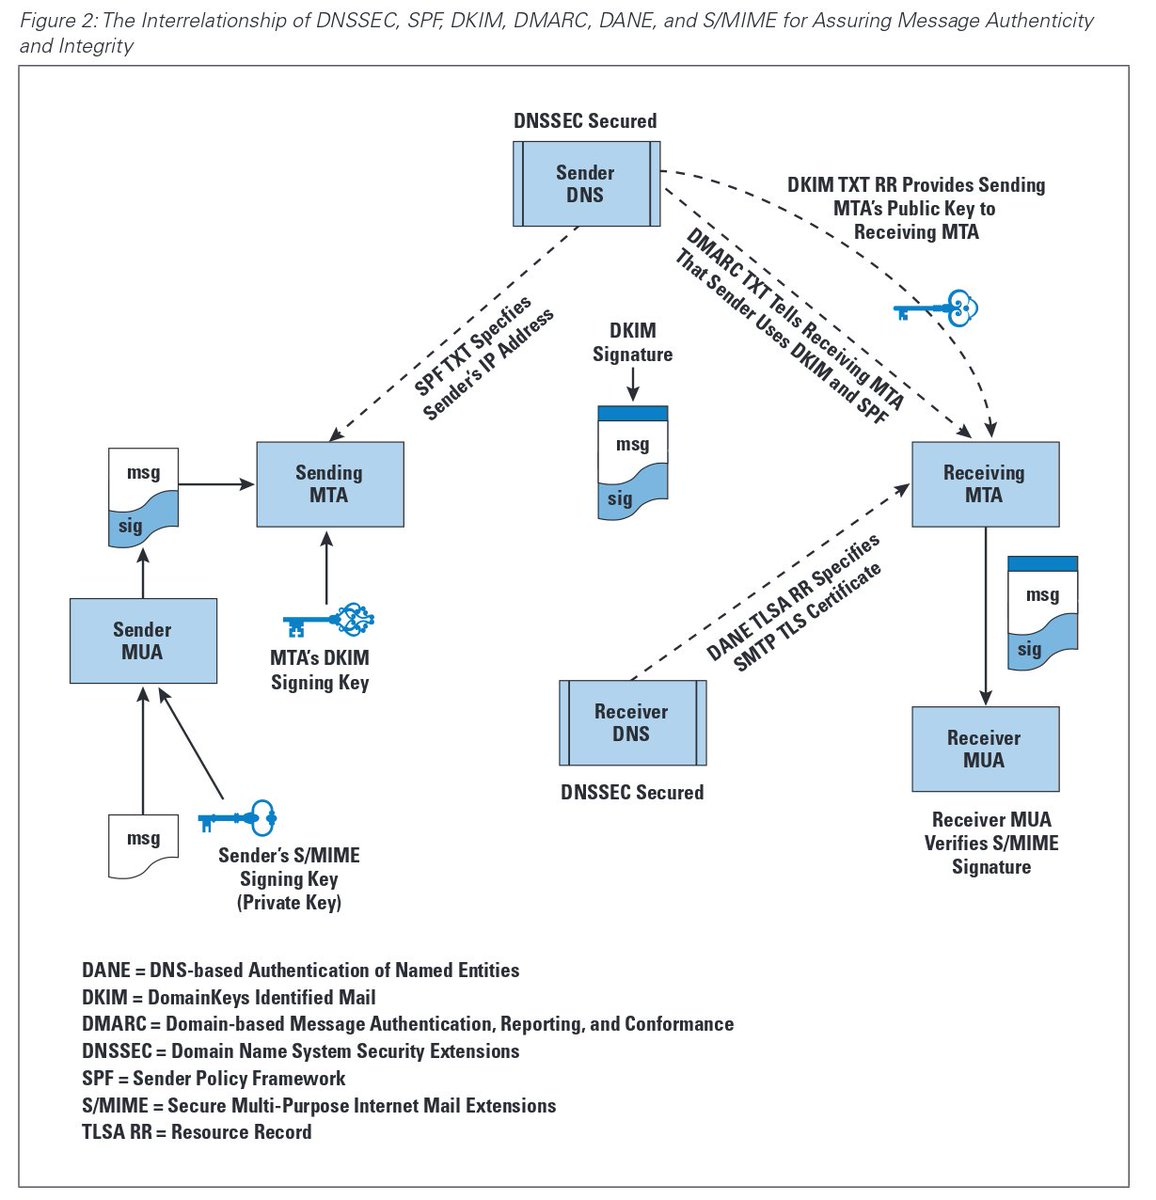 on twitter graphical overview of graphical overview of interrelation of dnssec spf dkim dmarc dane smime in internet protocol journal pdf p7 pooptronica